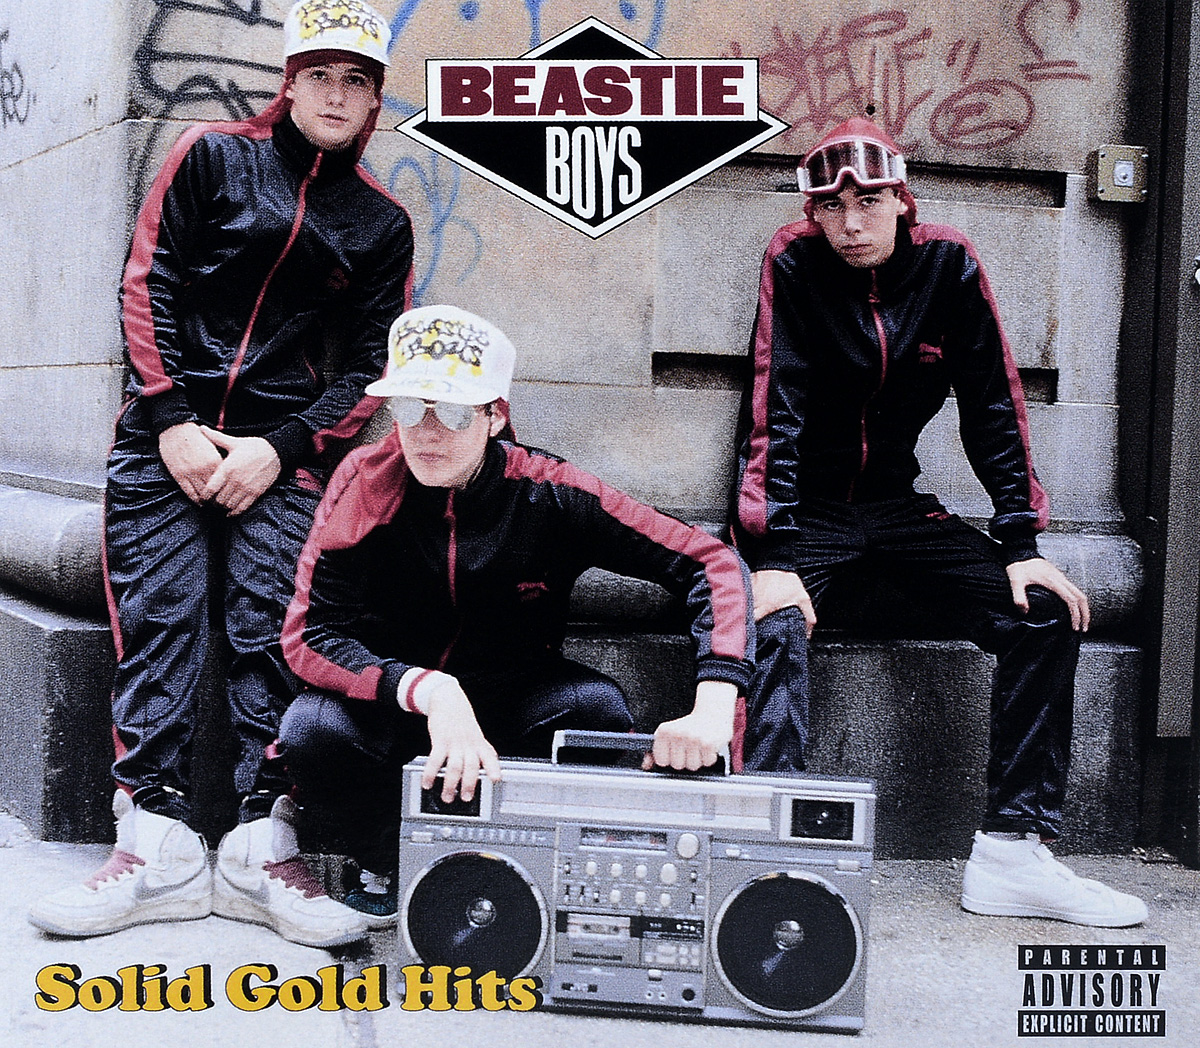 The Beastie Boys Beastie Boys. Solid Gold Hits beastie boys beastie boys mix up